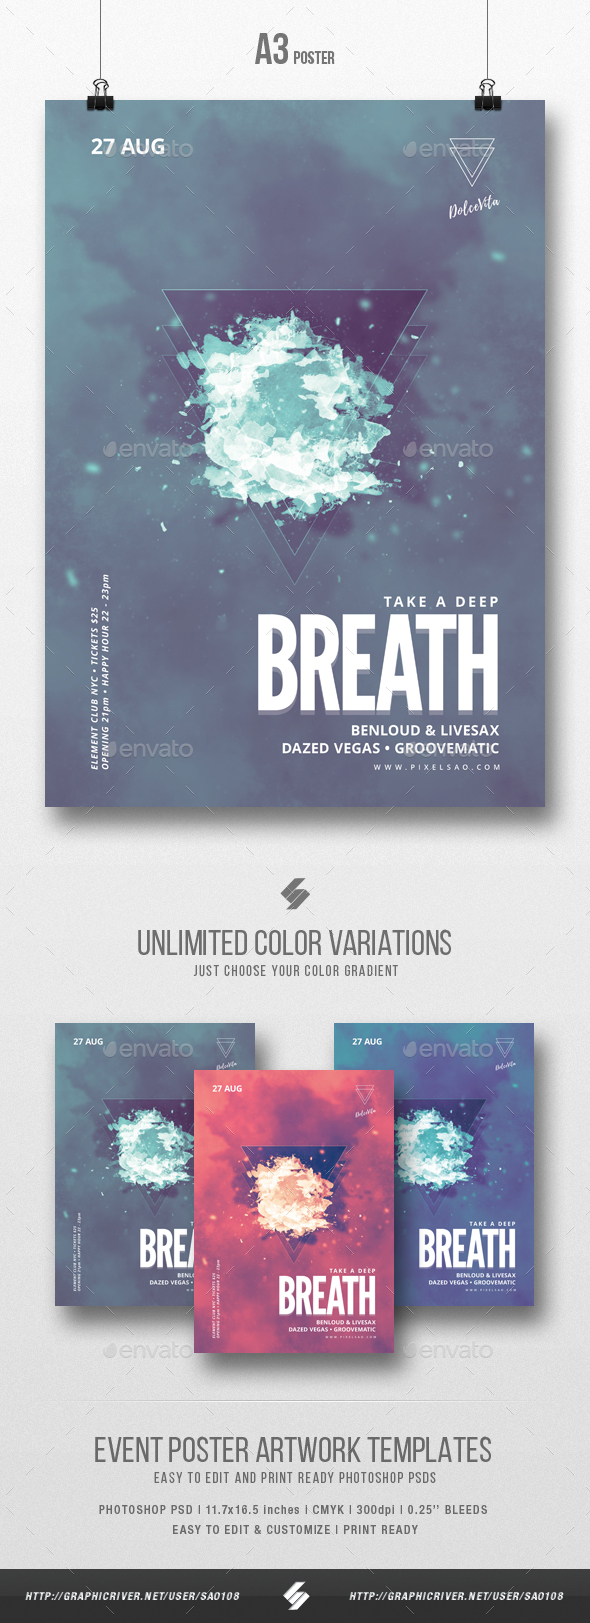 Take A Deep Breath - Minimal Party Flyer / Poster Template A3 - Clubs & Parties Events